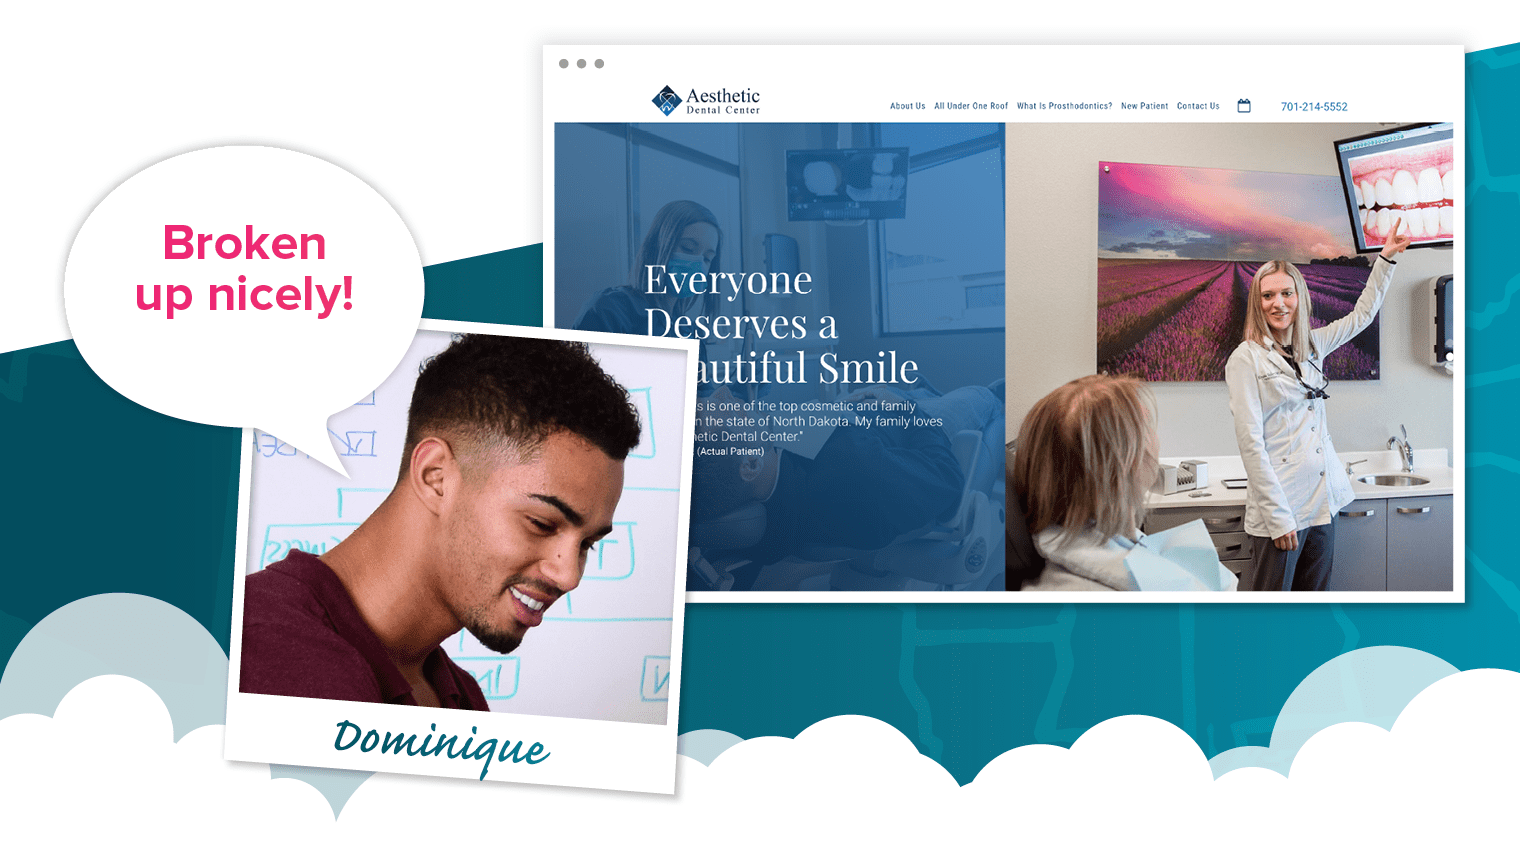 Aesthetic Dental Center, Dominique's fave dental website of the year